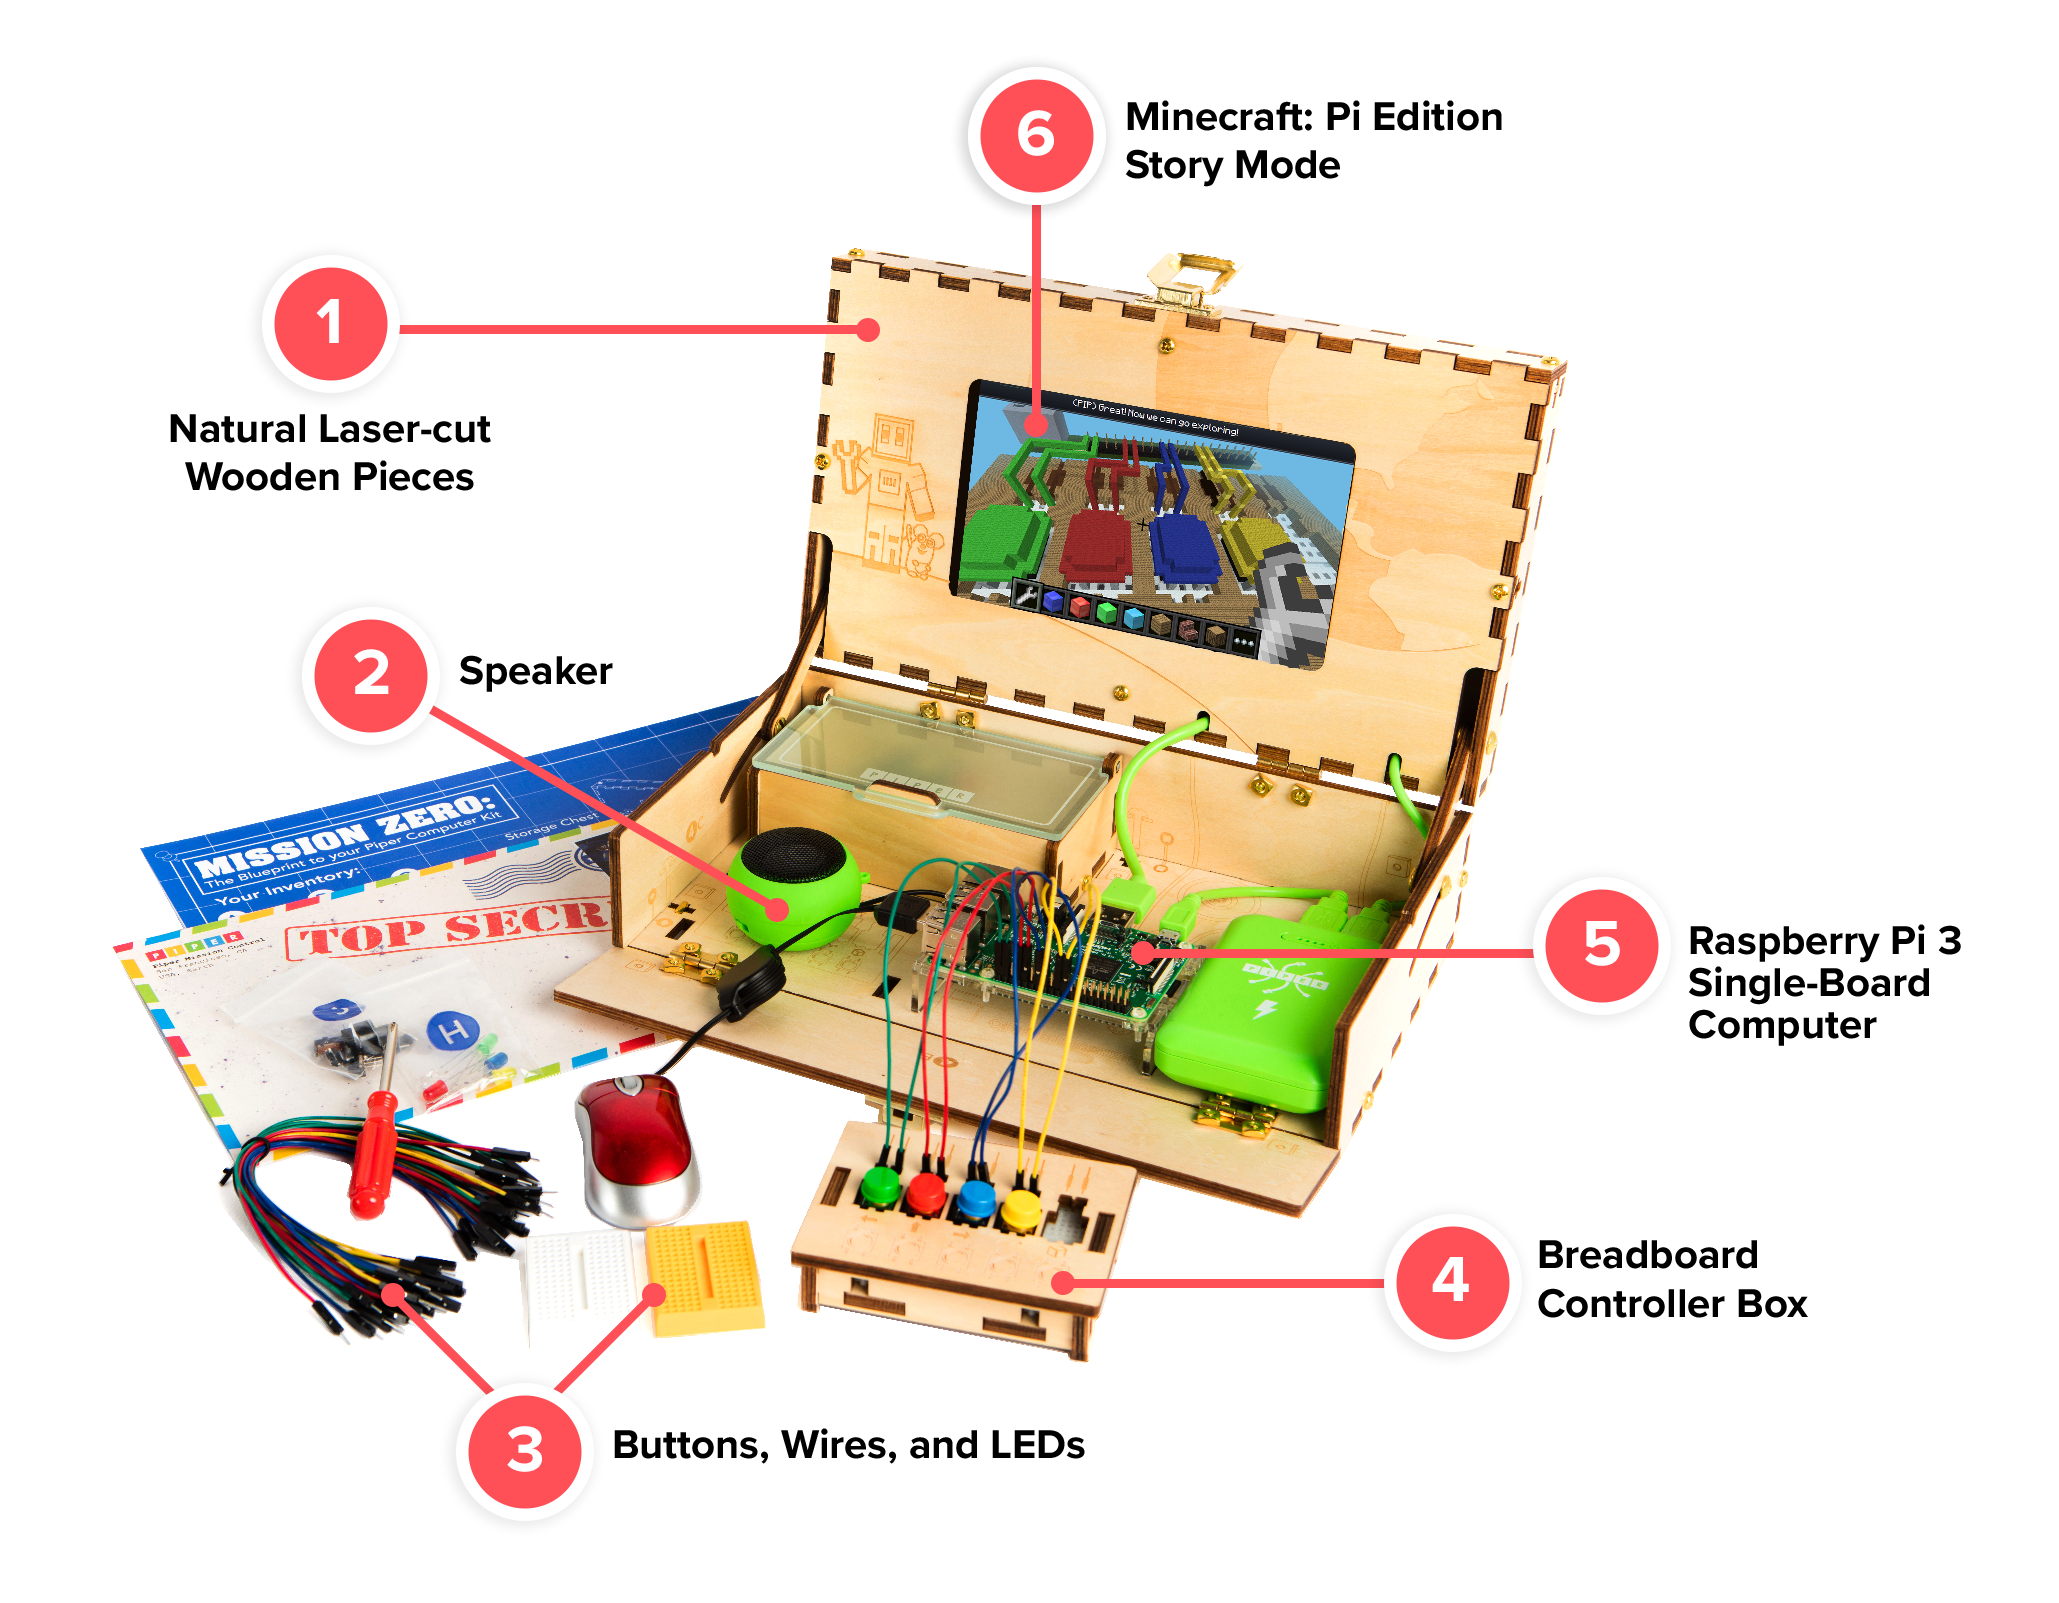 Piper Computer Kit Changing Circuits Engineering Games Play Free About Whats In A